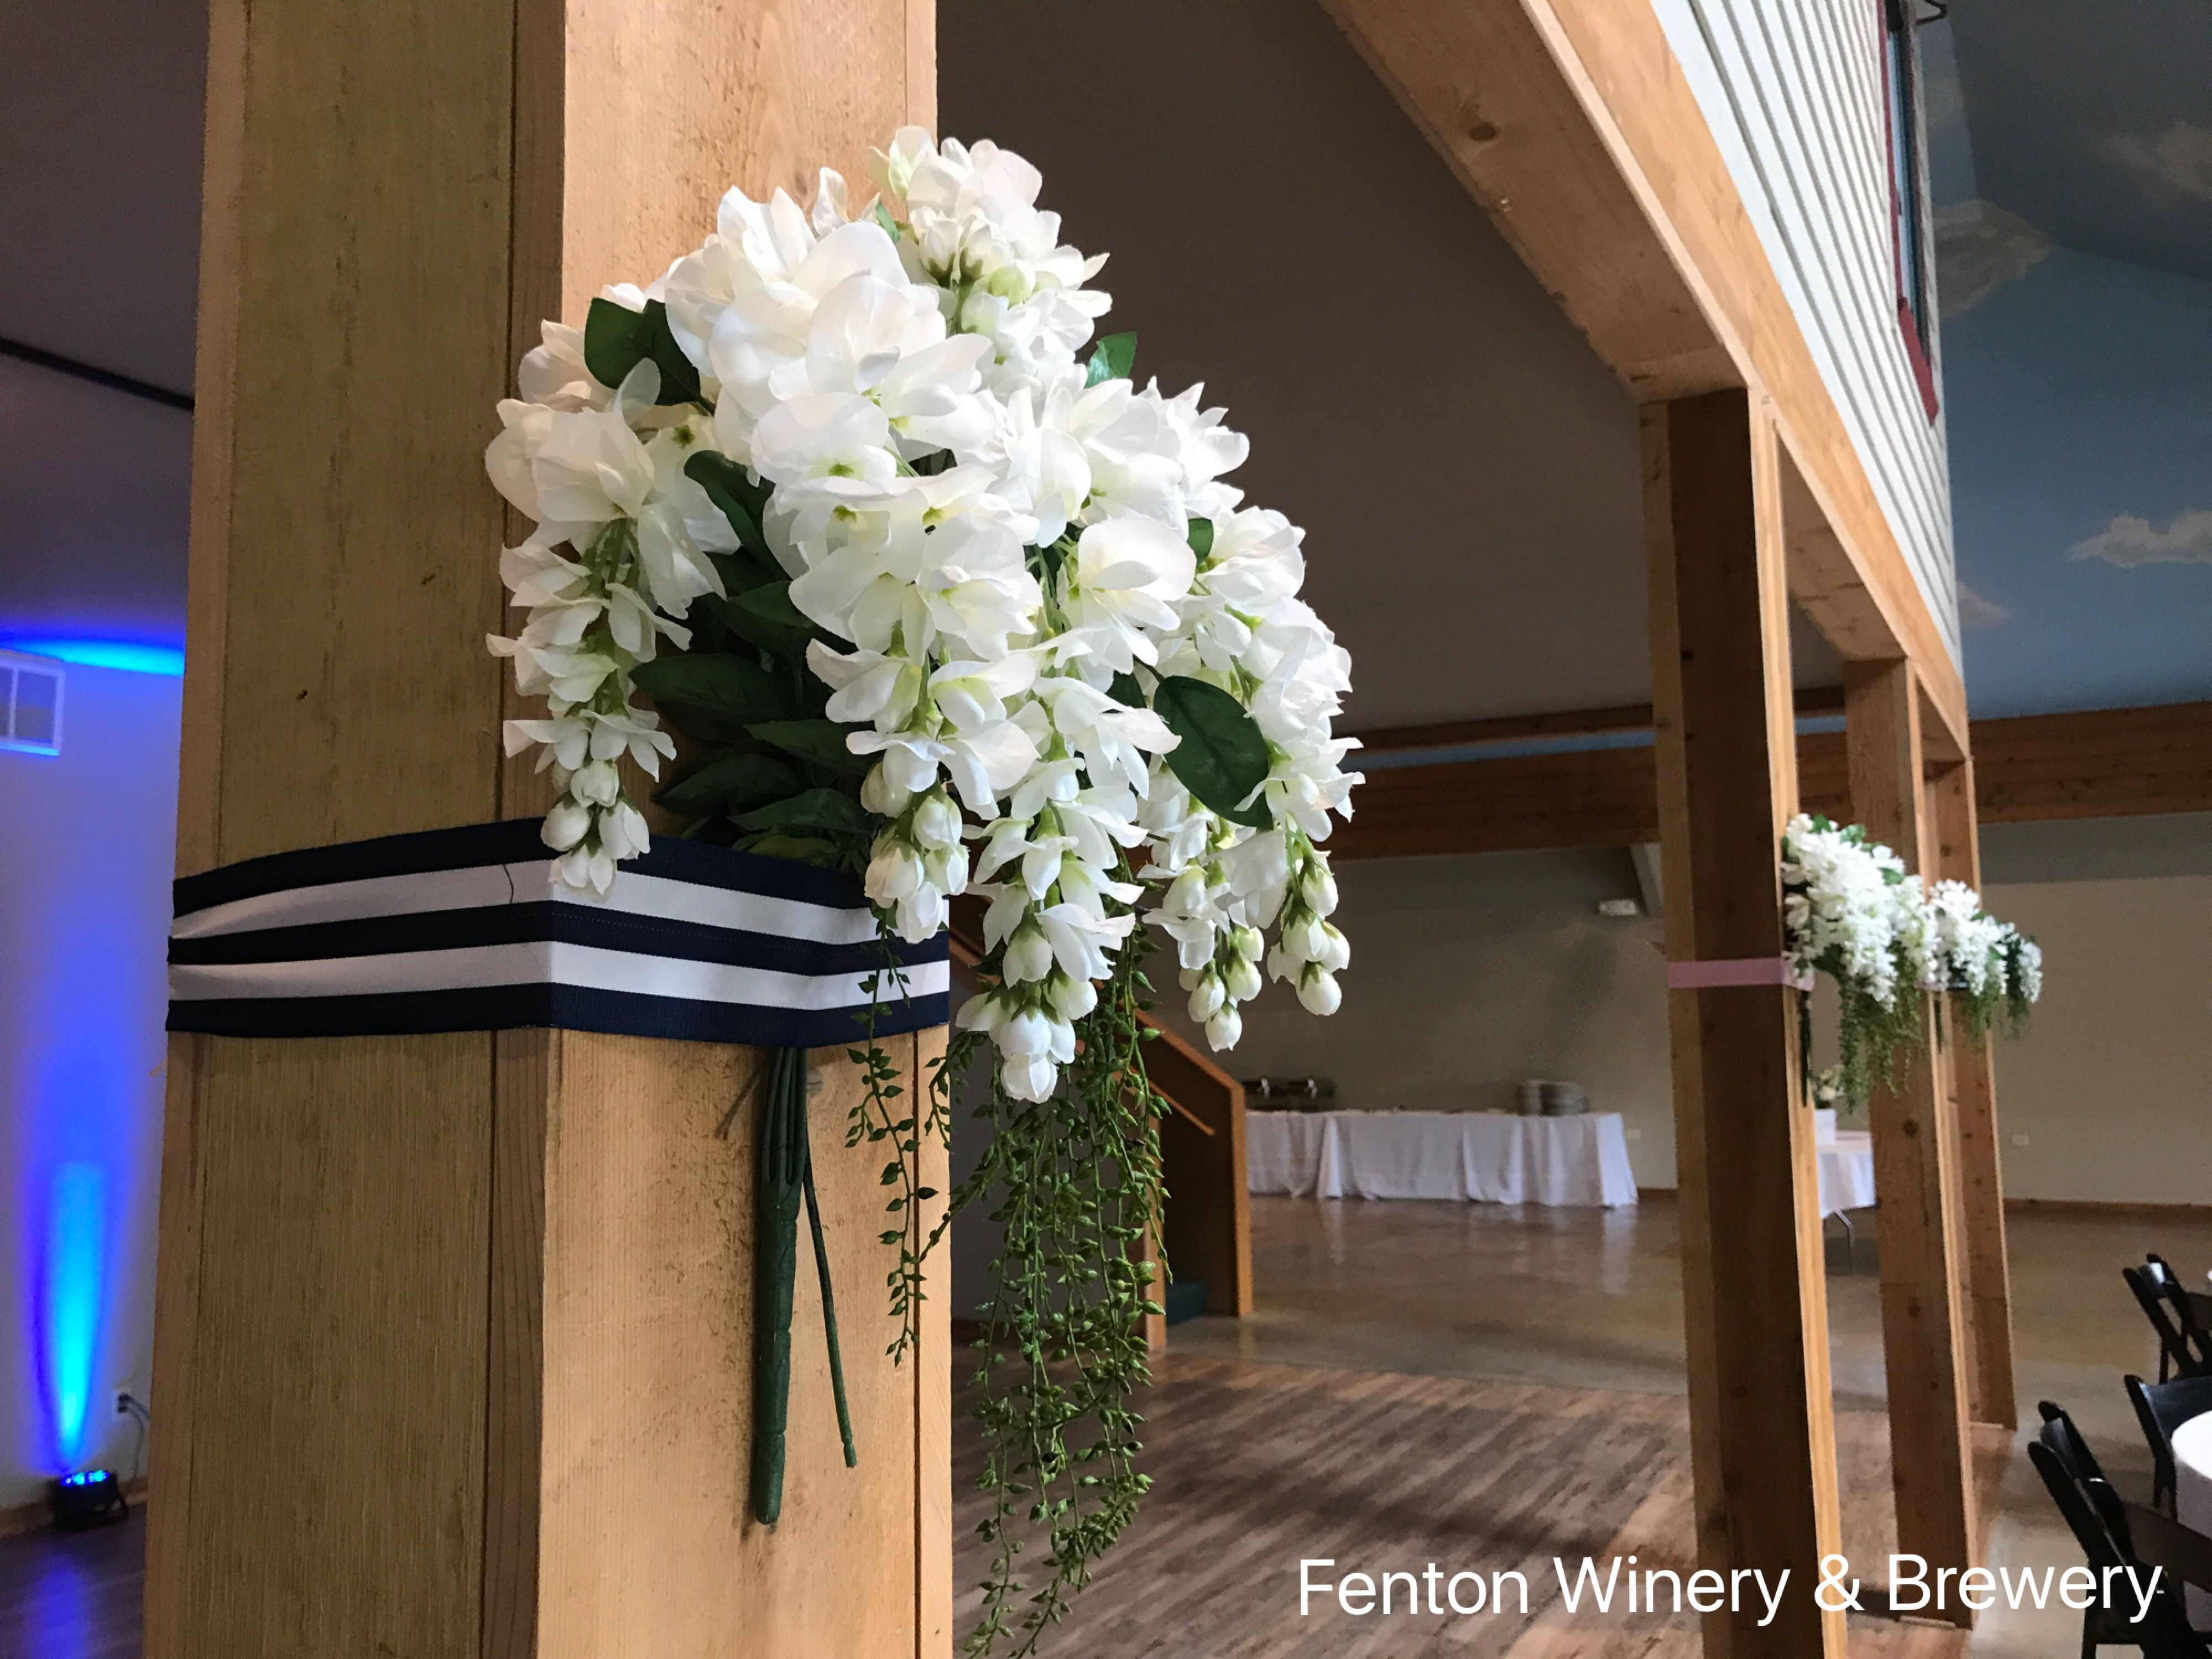 Simple Silk Flower Display Ribbon Tied To The Pillars Makes For An